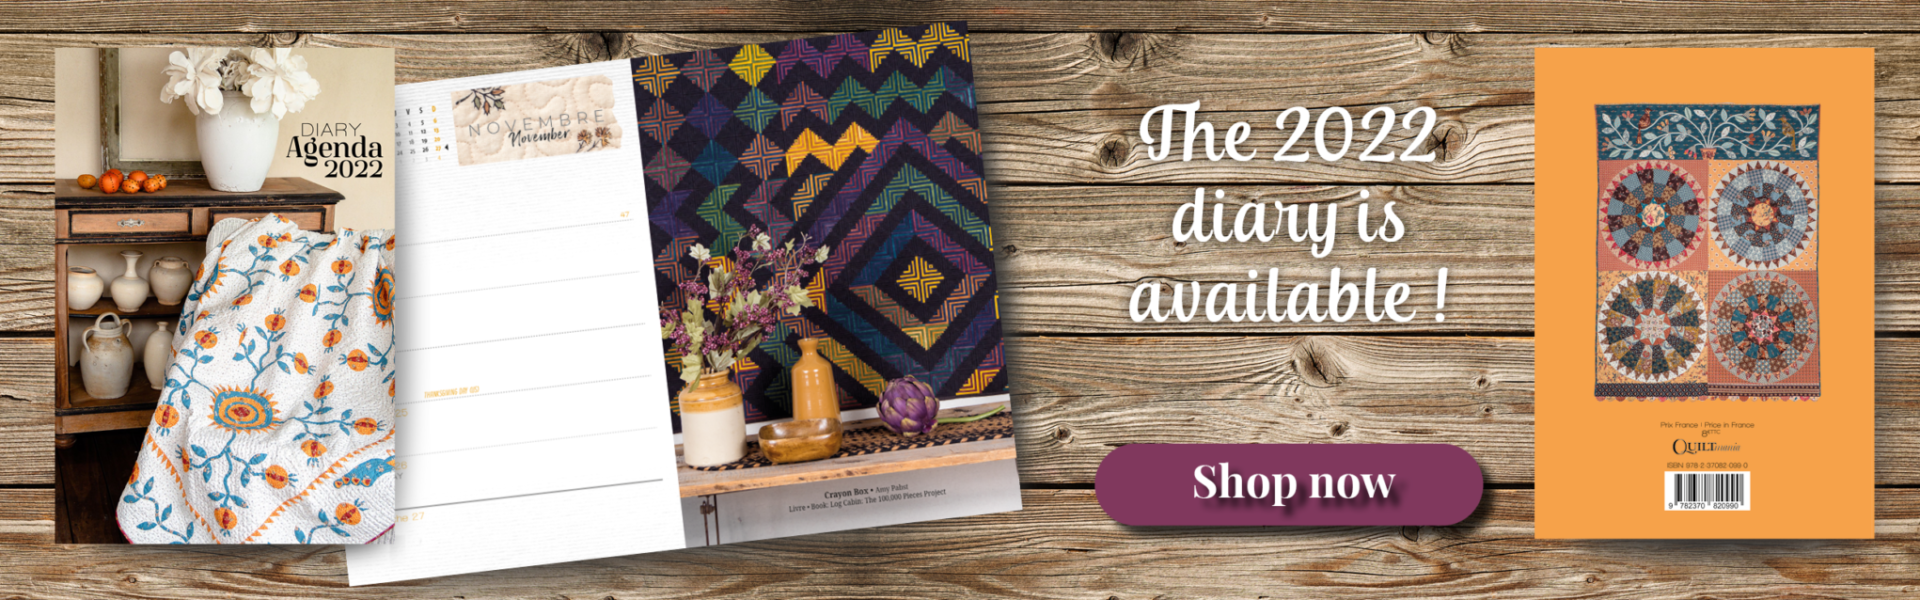 Quiltmania Diary 2022 banner